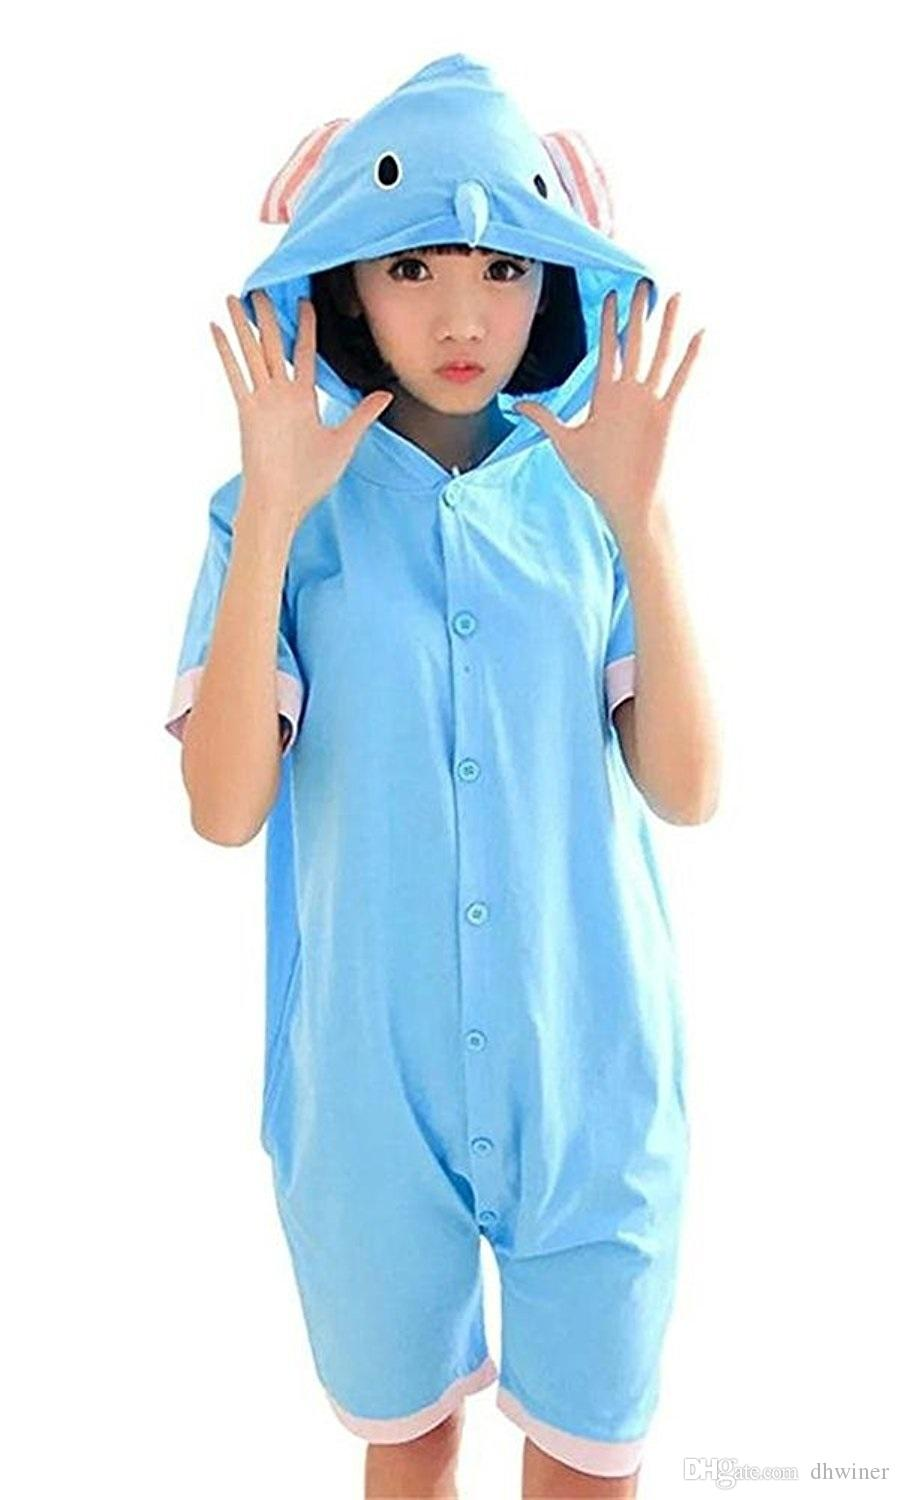 Unisex Adult Summer Short Sleeve Blue Bodysuit Romper One-Piece Outfit Costume Sleepwear Elephant